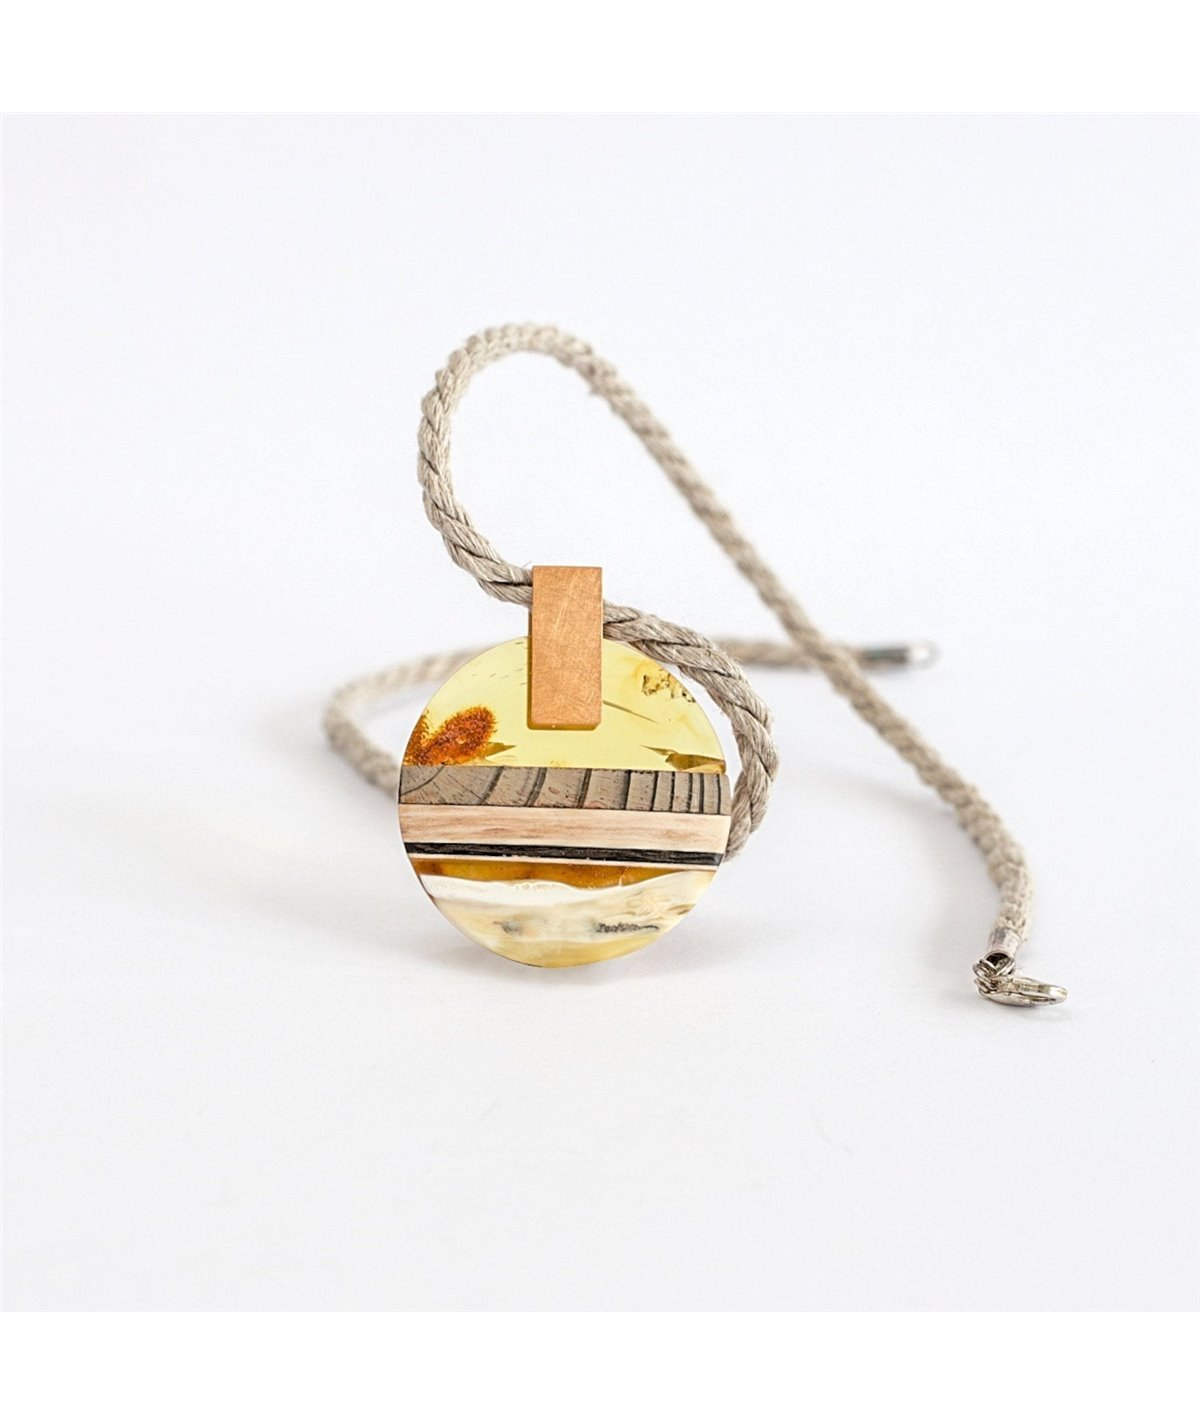 Sunset Unique Pendant Necklaces Amberwood Marta Wlodarska